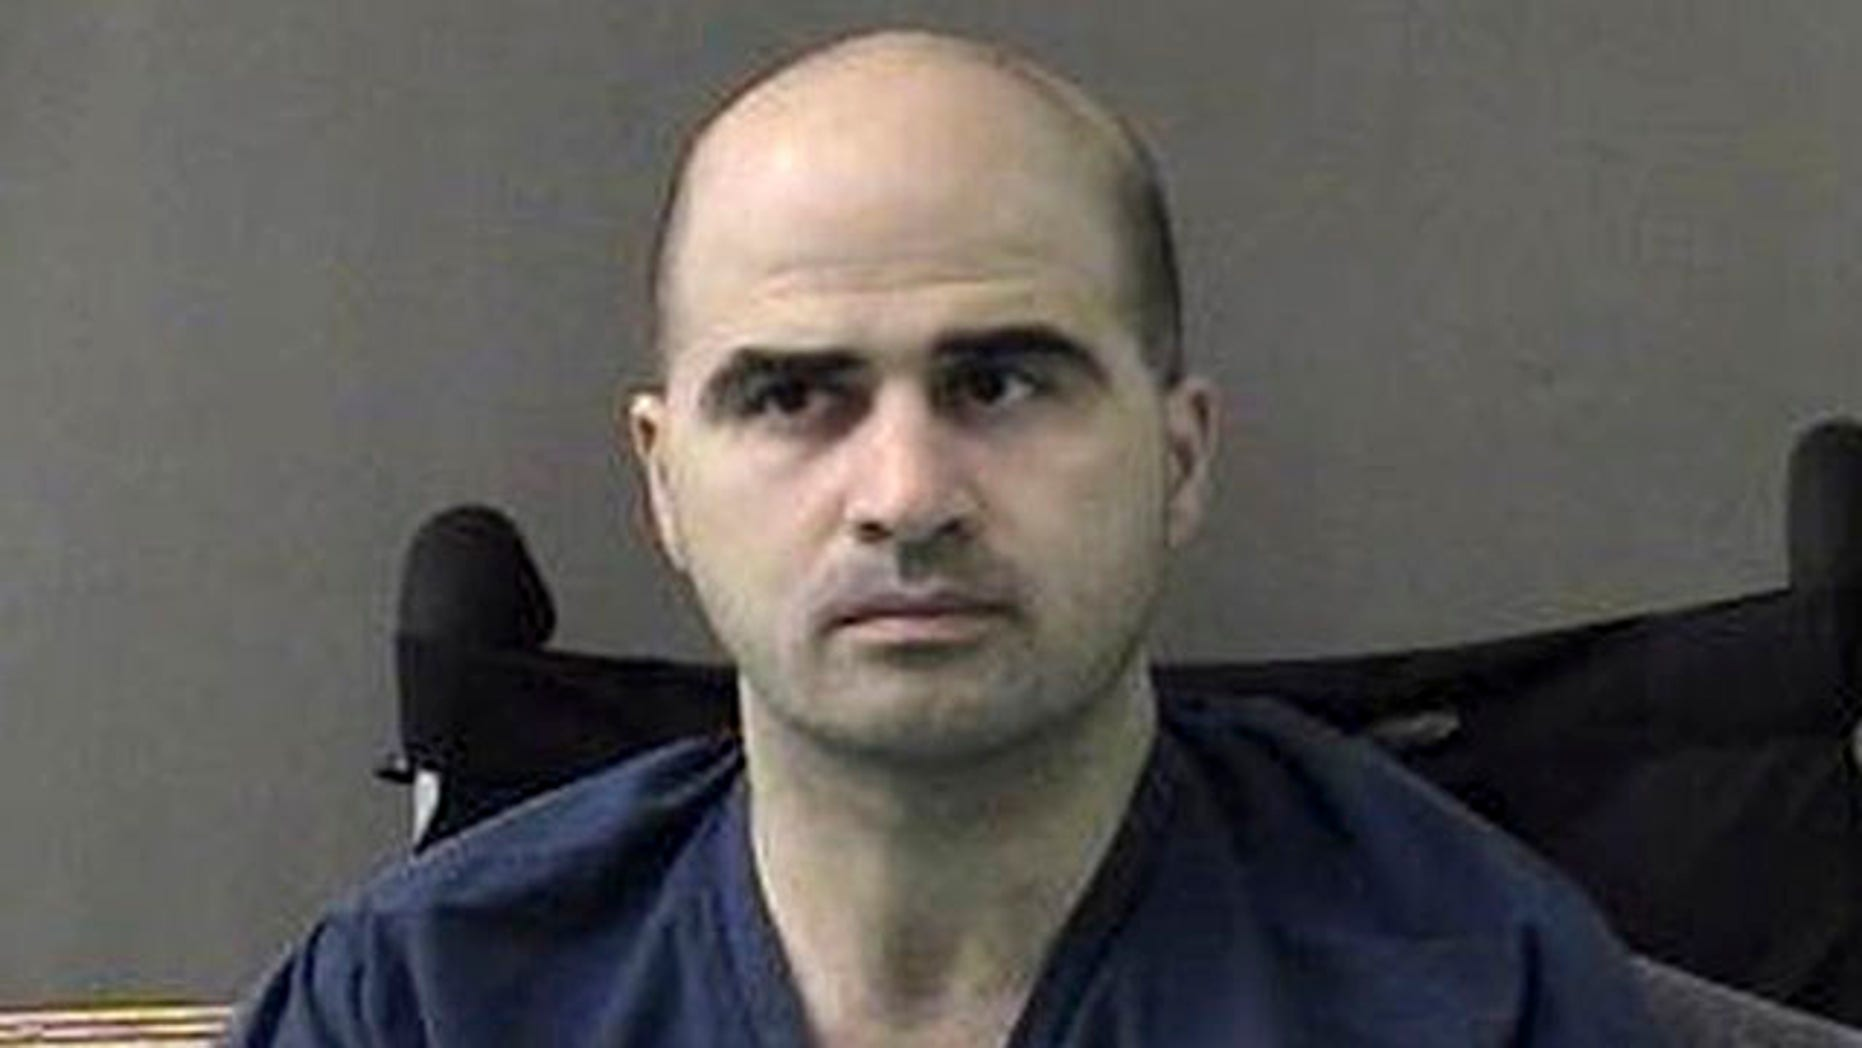 April 9, 2010: In a photo released by the Bell County Sheriffs Department, U.S. Major Nidal Hasan sits at the San Antonio to Bell County Jail in Belton, Texas.